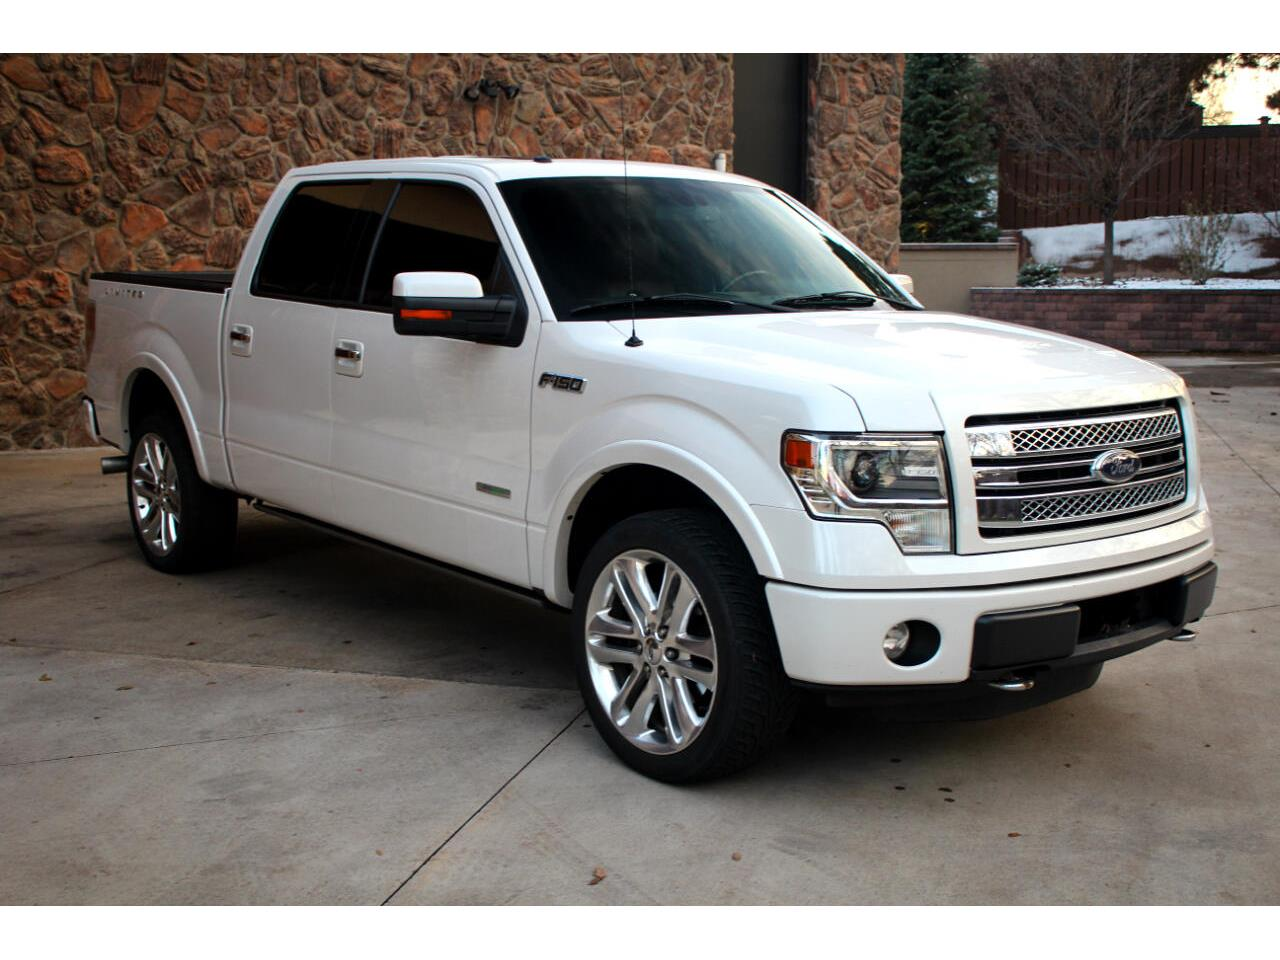 2013 Ford F150 (CC-1421455) for sale in Greeley, Colorado